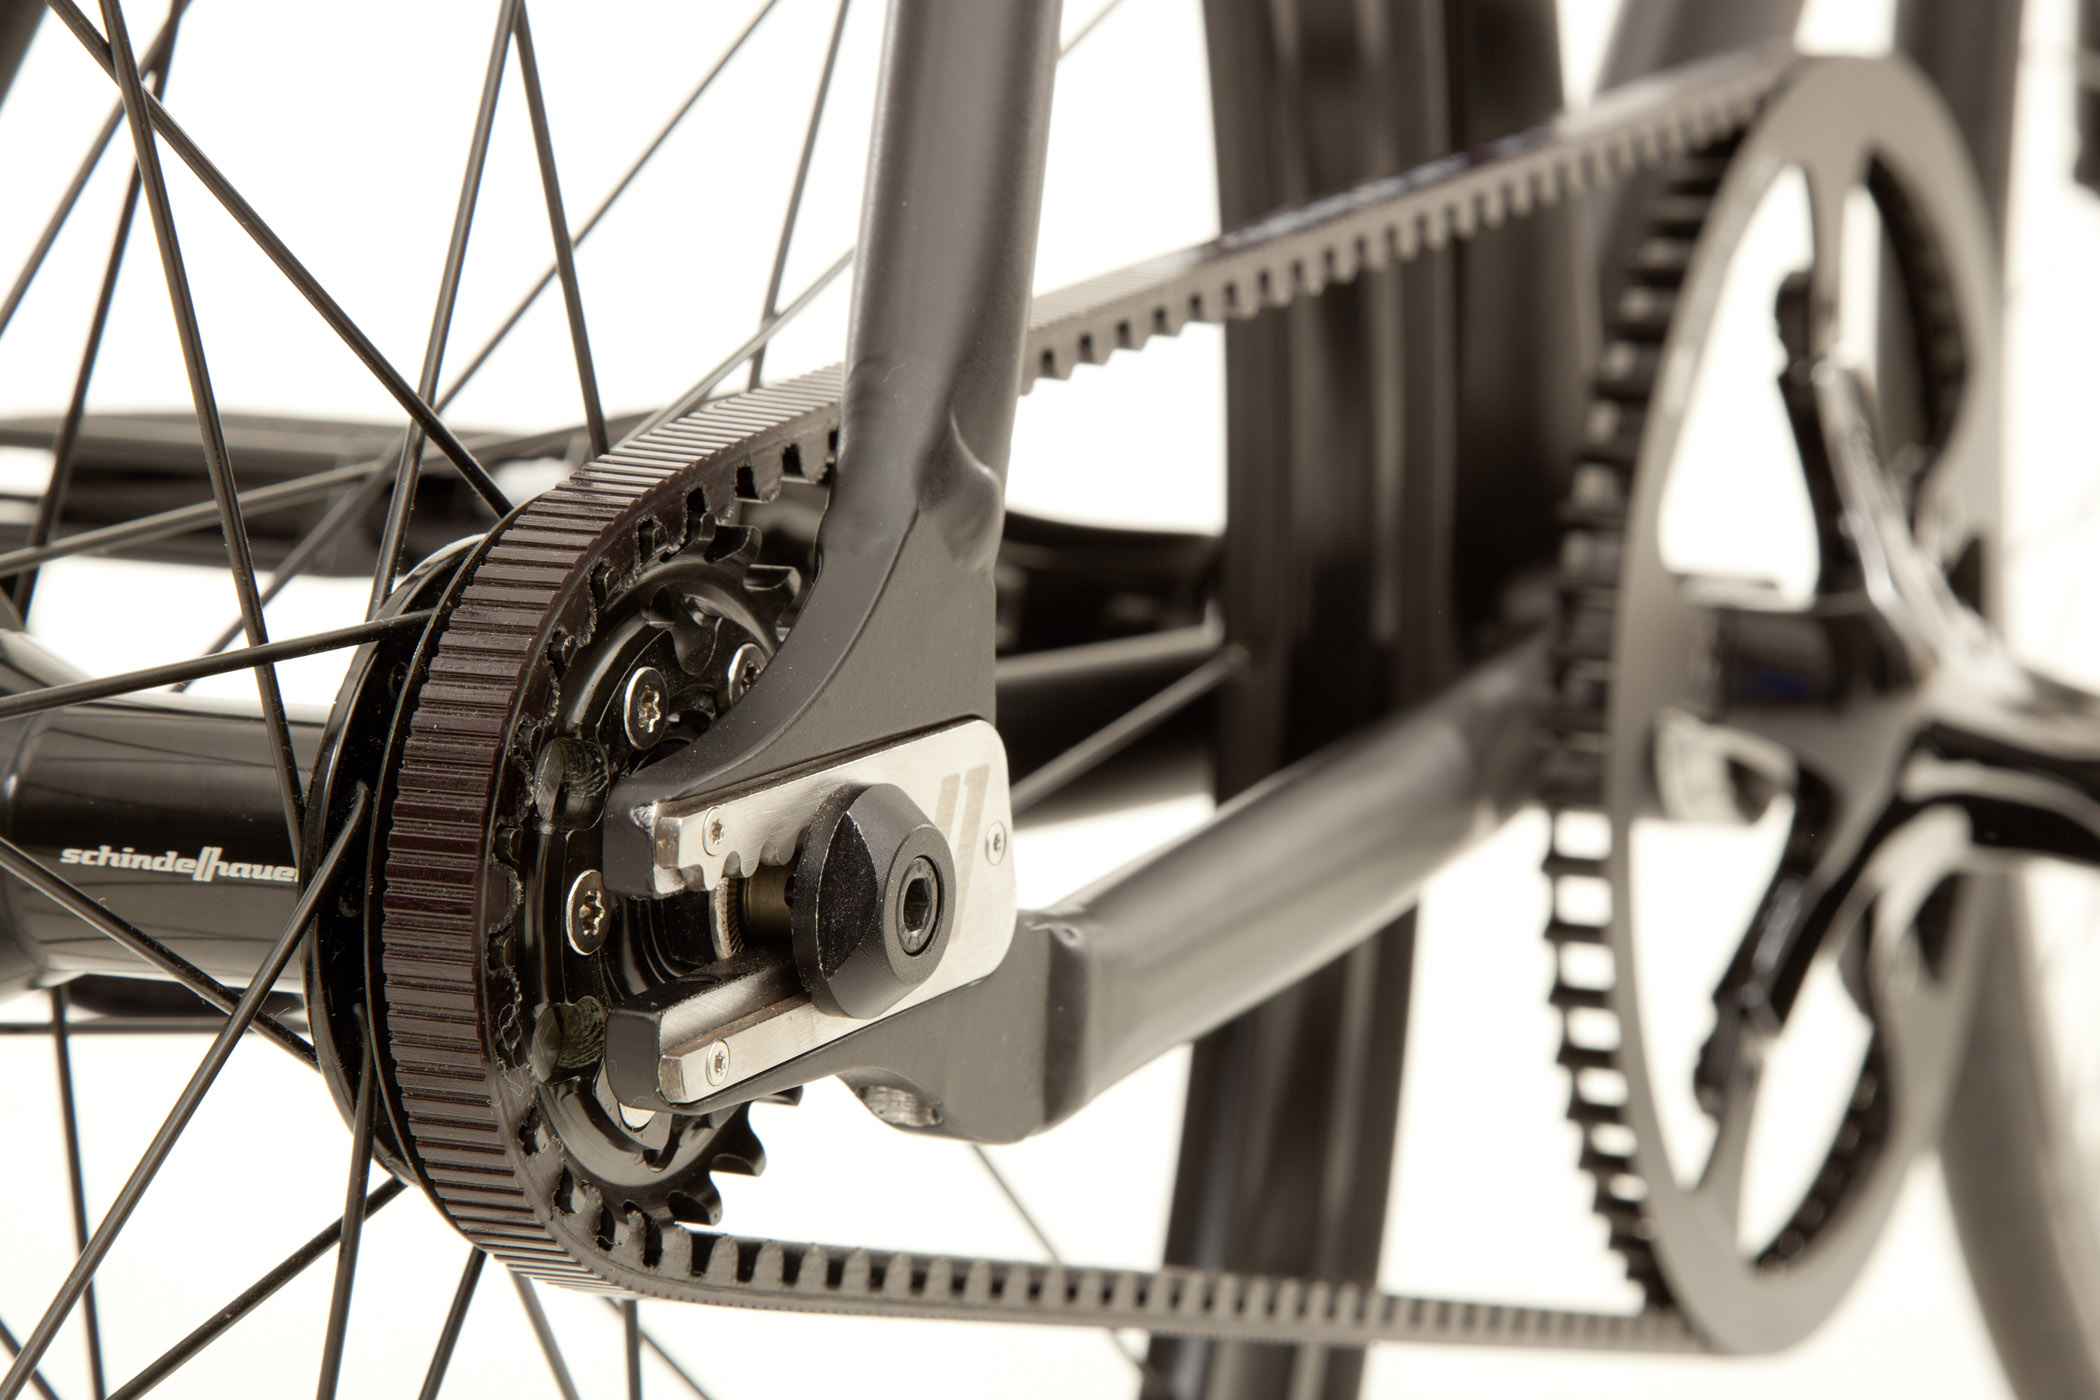 Gates Carbon Drive is a belt driven system for bikes